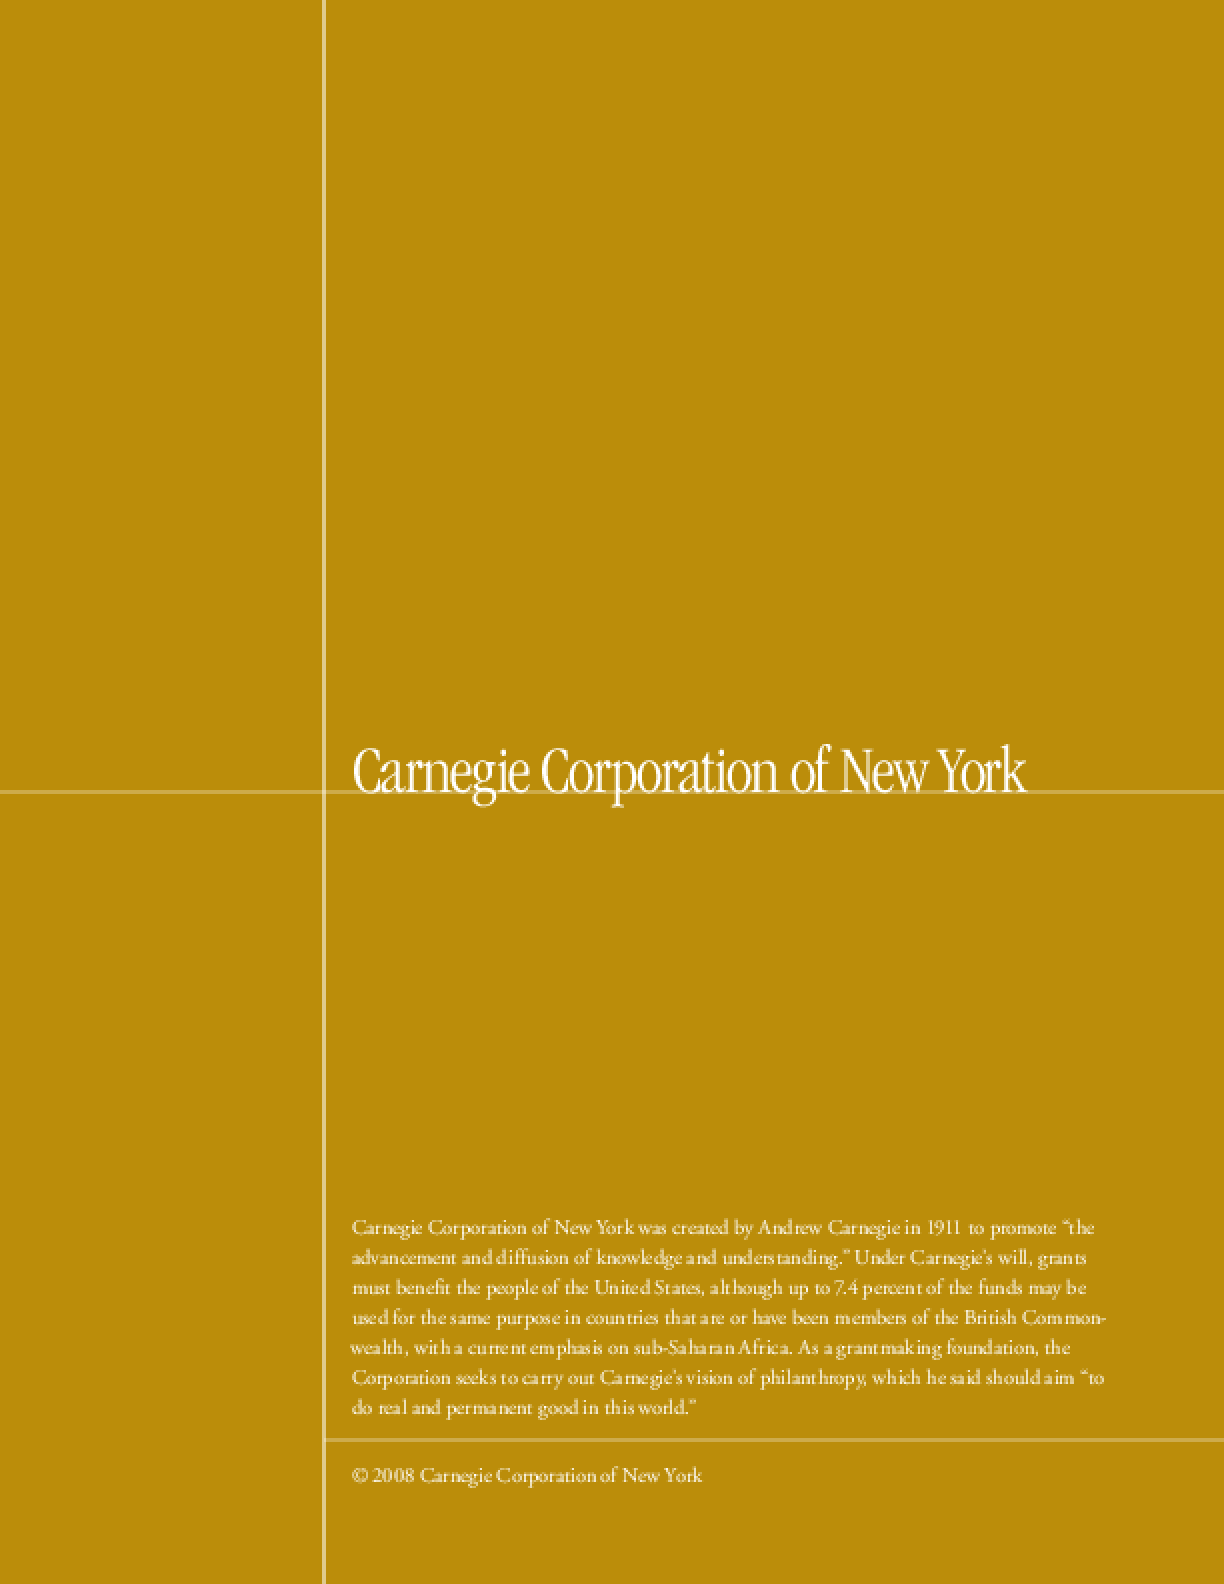 Carnegie Corporation of New York - 2007 Annual Report